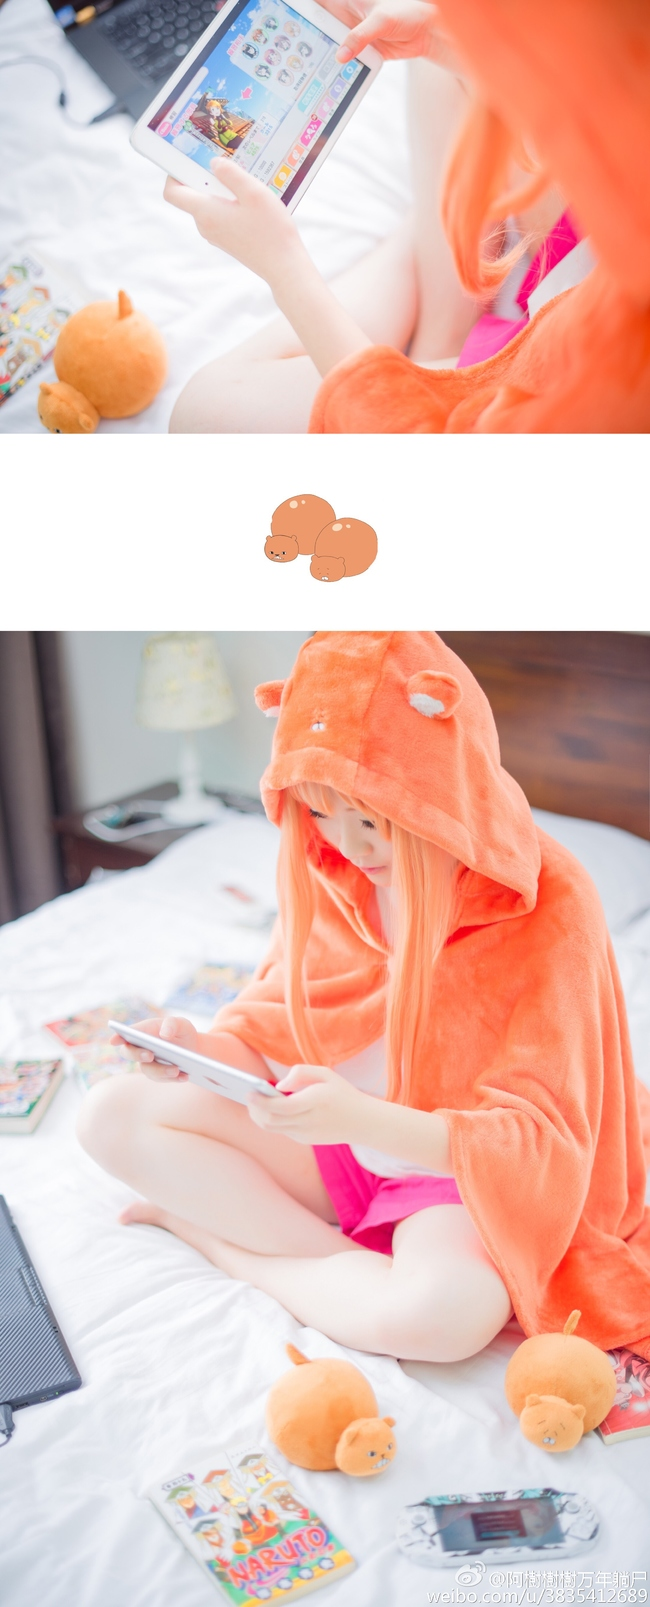 This Umaru Cosplayer Will Make You Never Want to Leave Your Room4